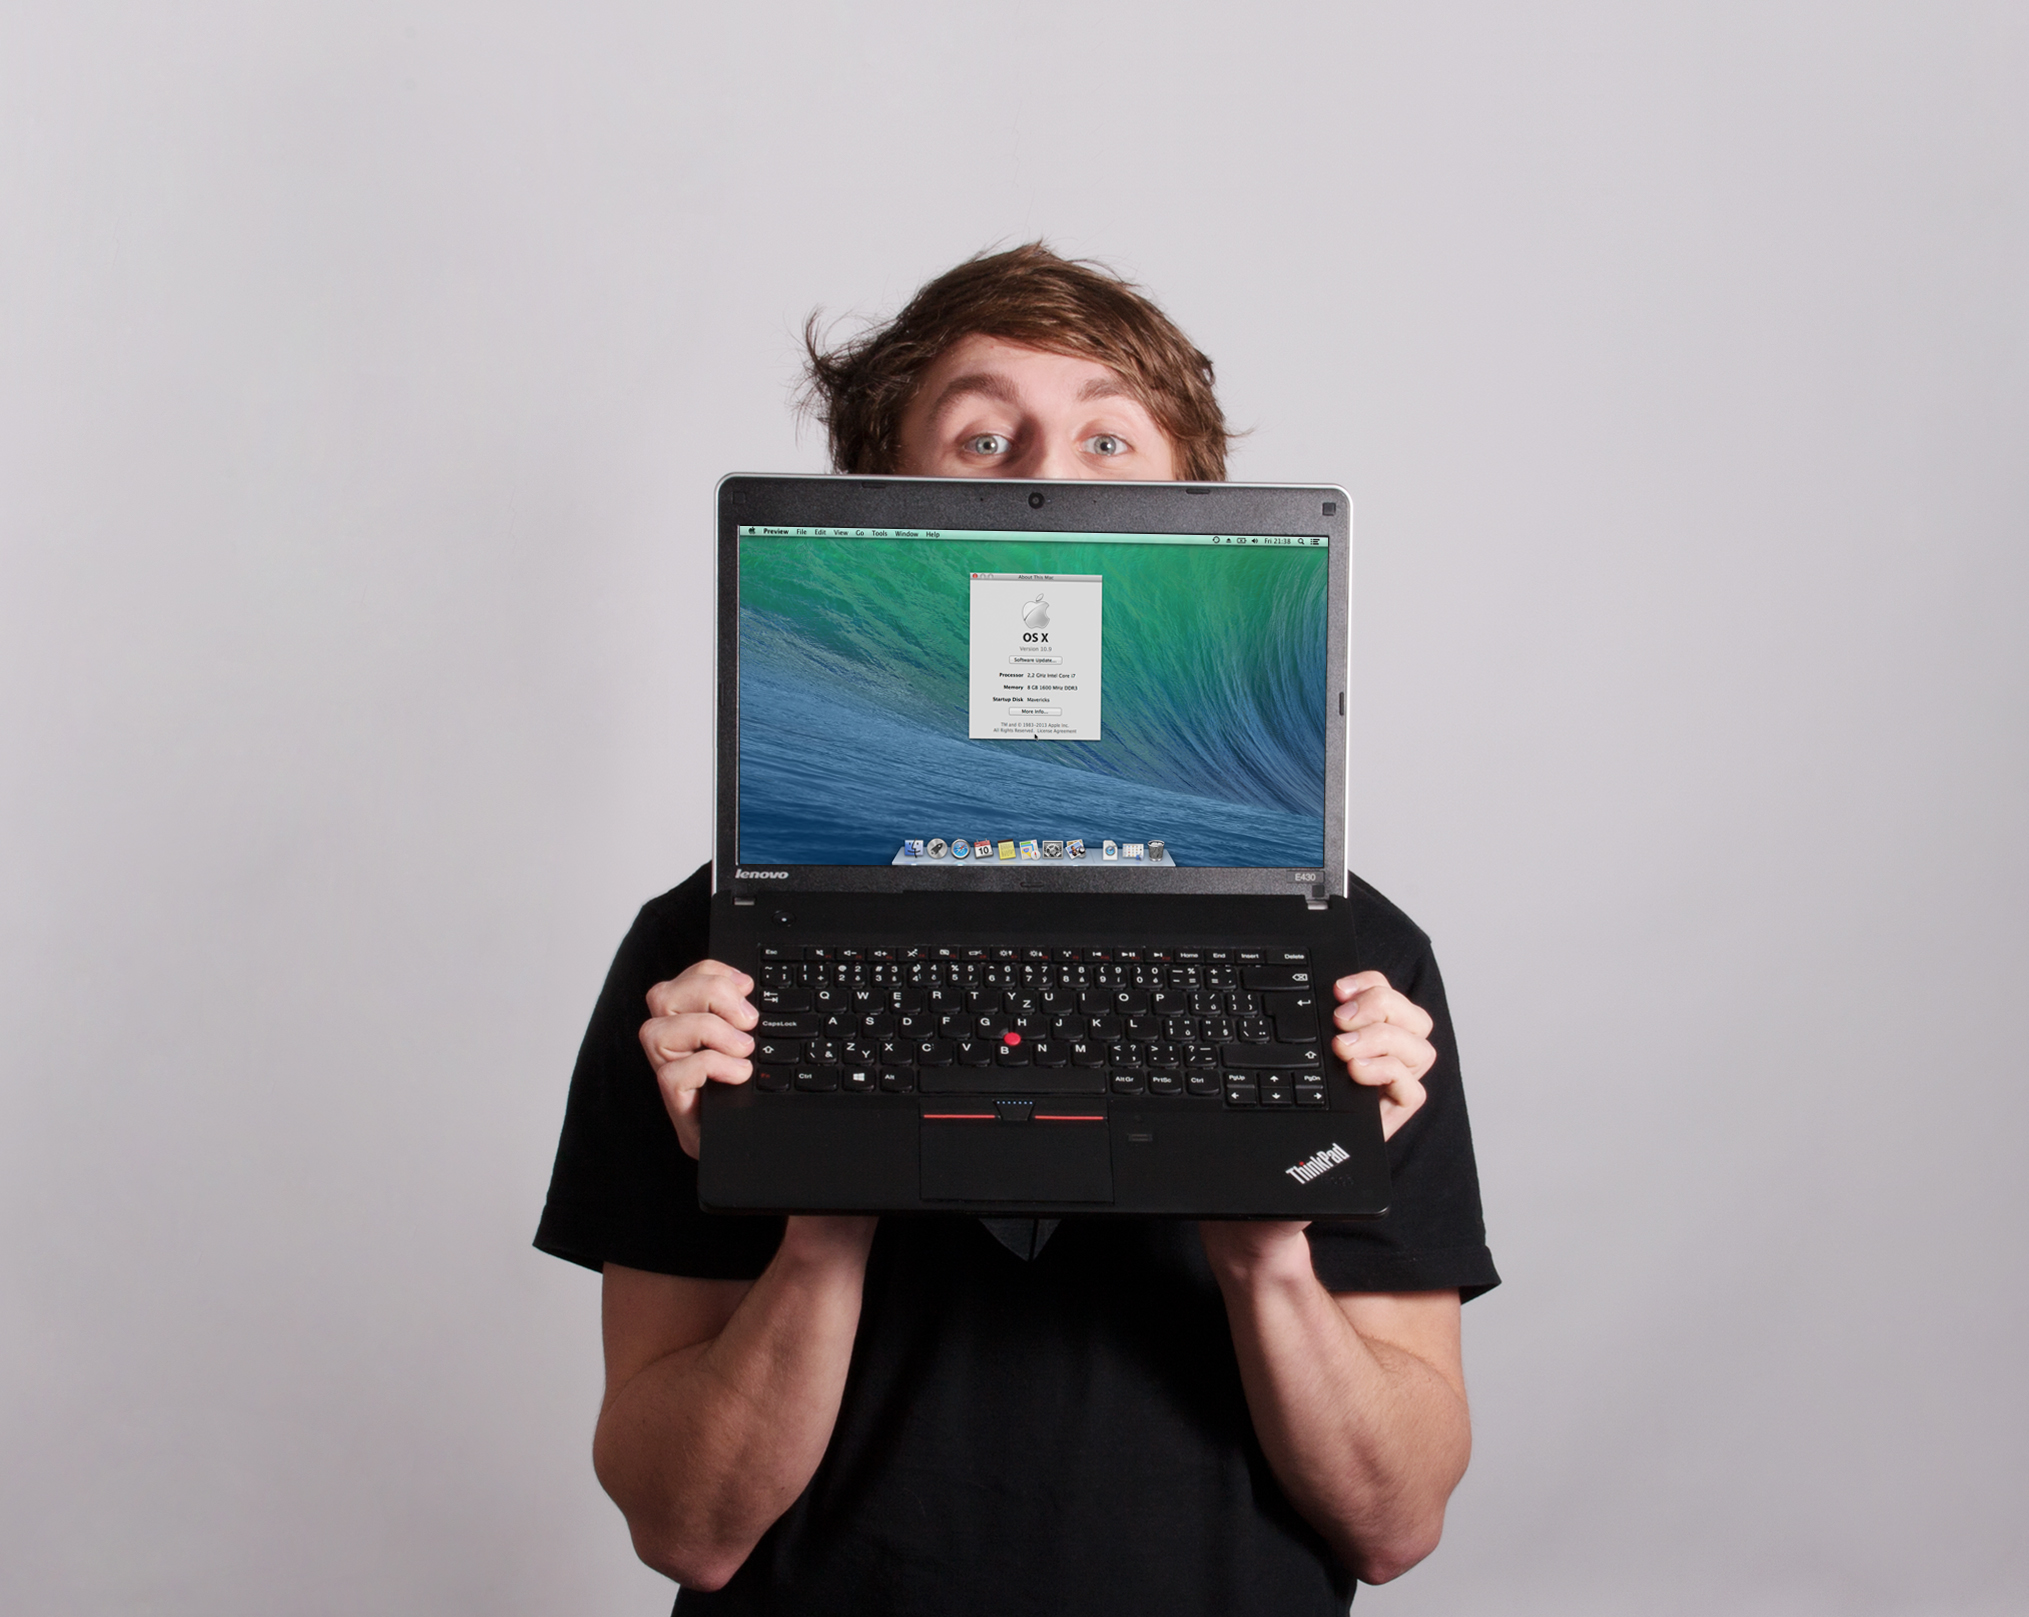 I'm hiding behind my laptop, you can't see me, I can't see you.